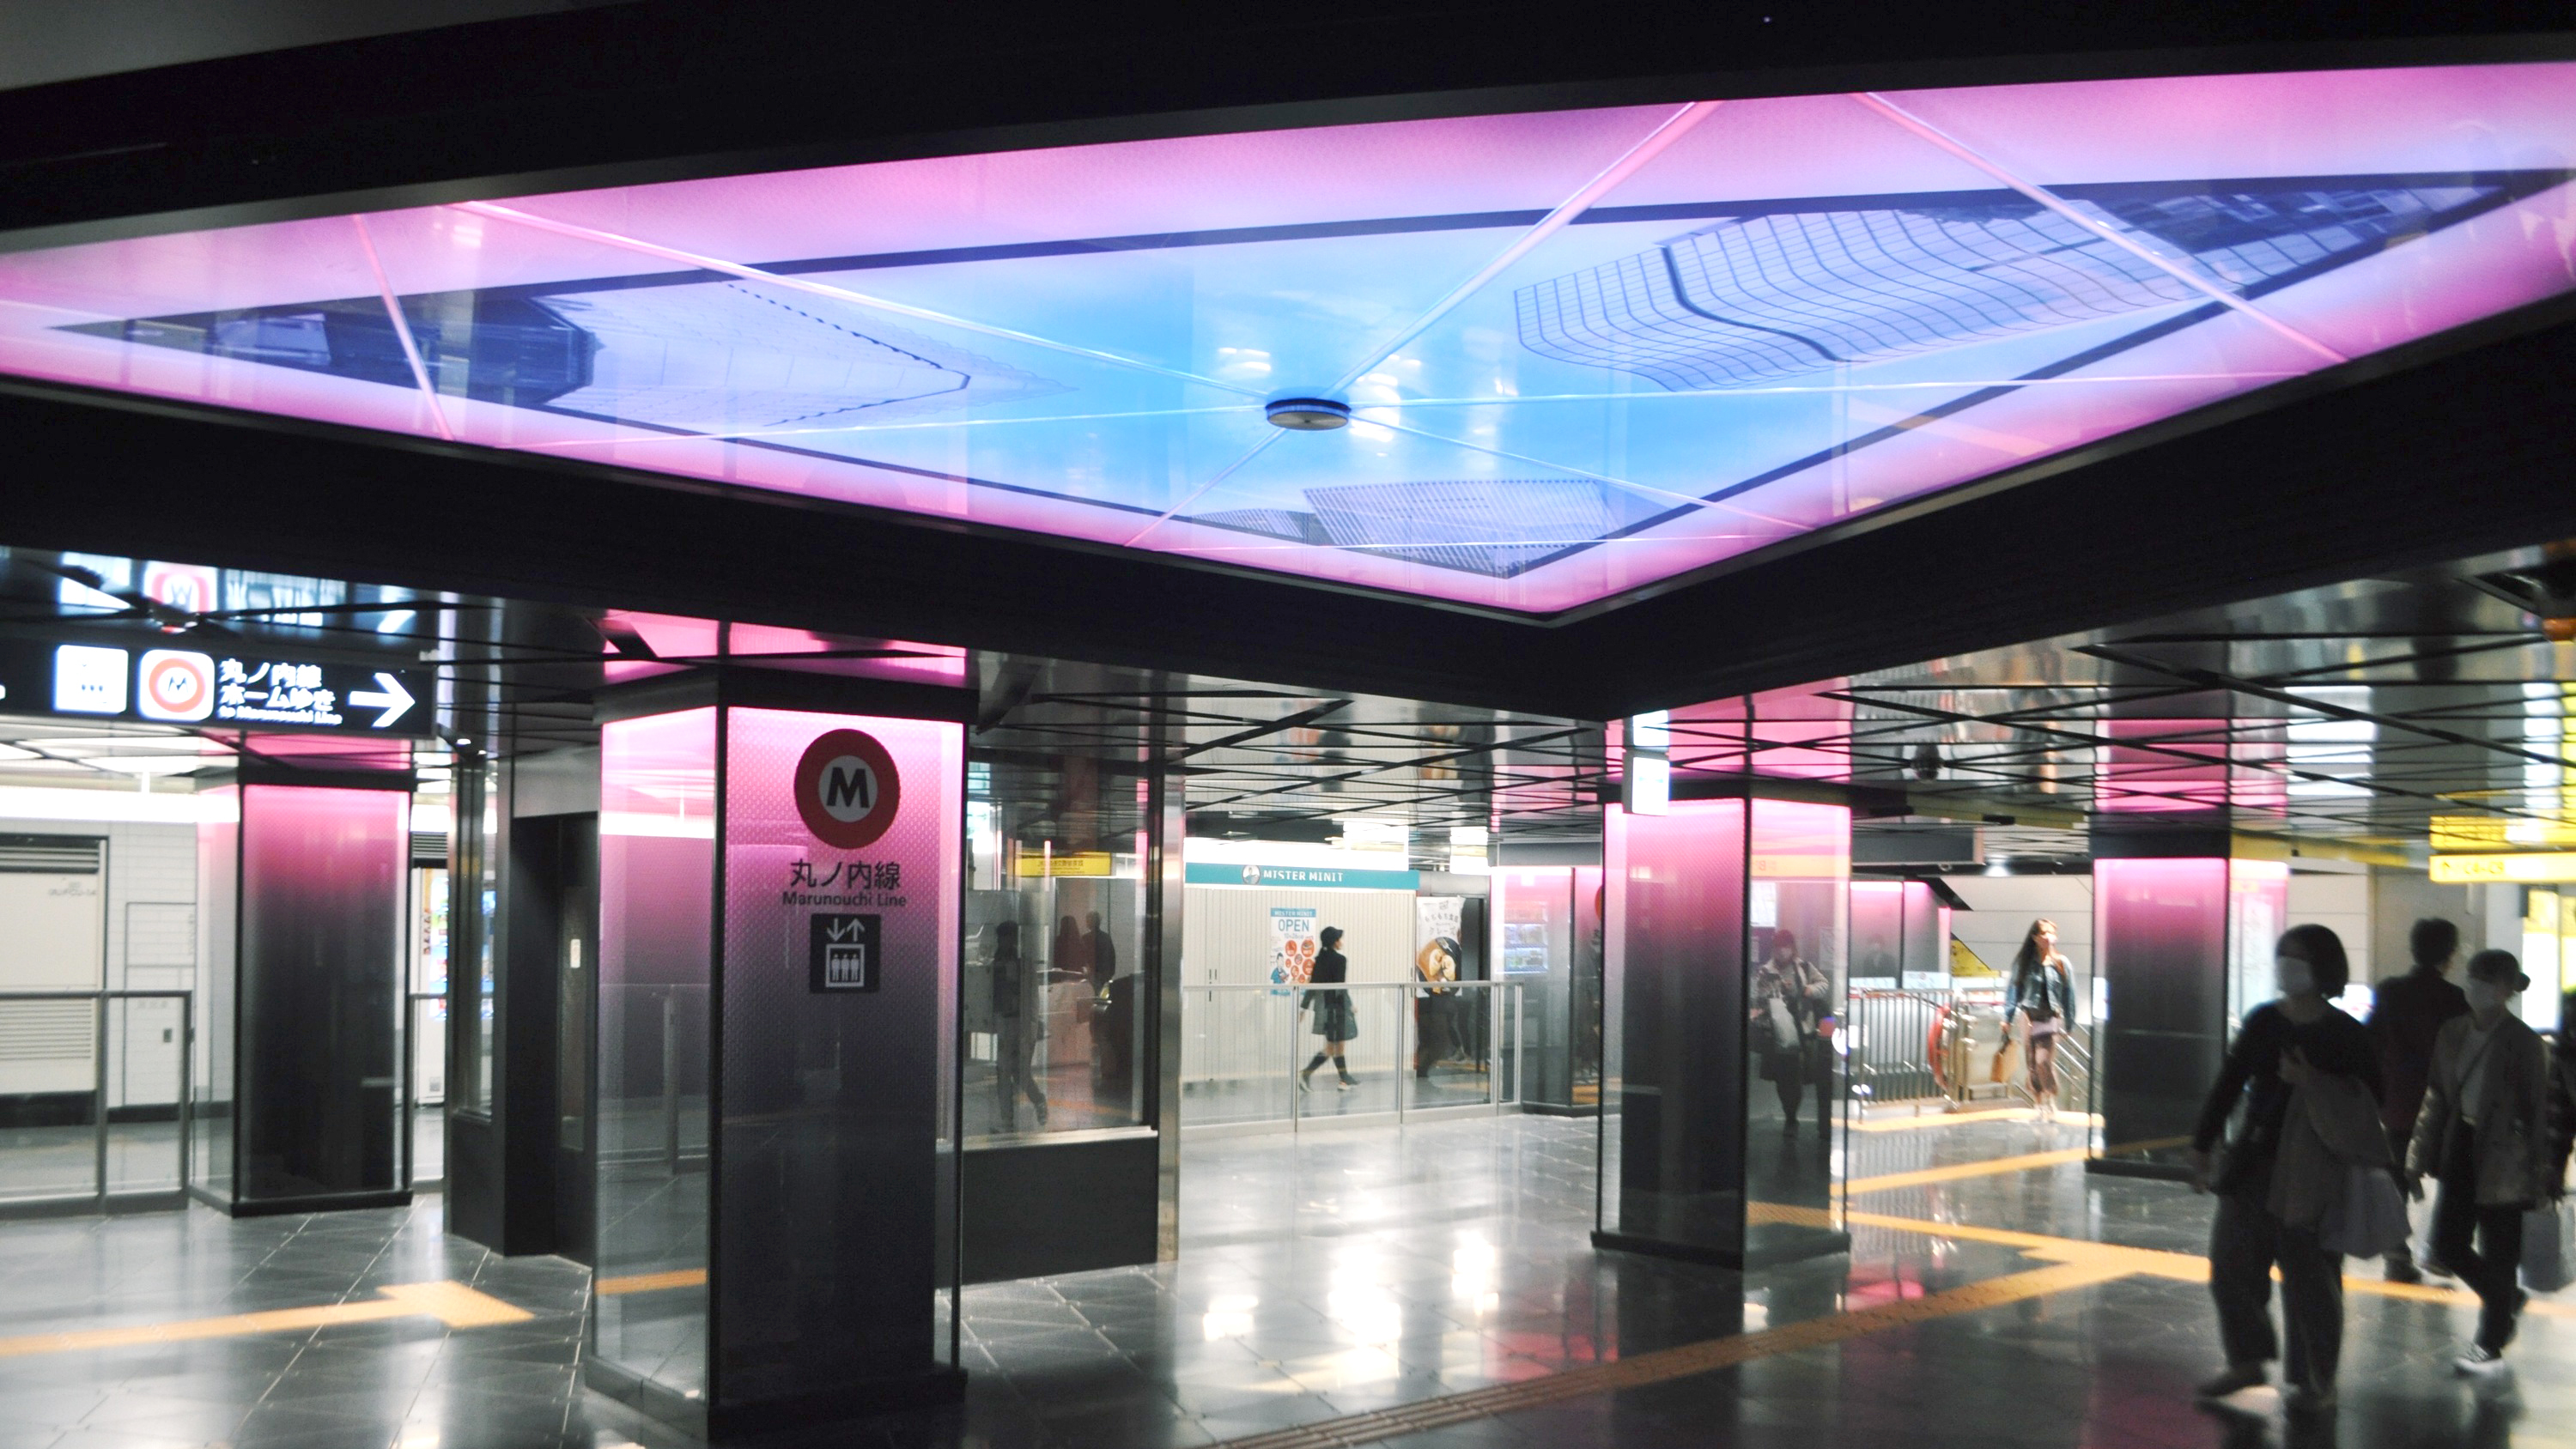 Ginza Station has unveiled its slick new look after nearly three years of renovations